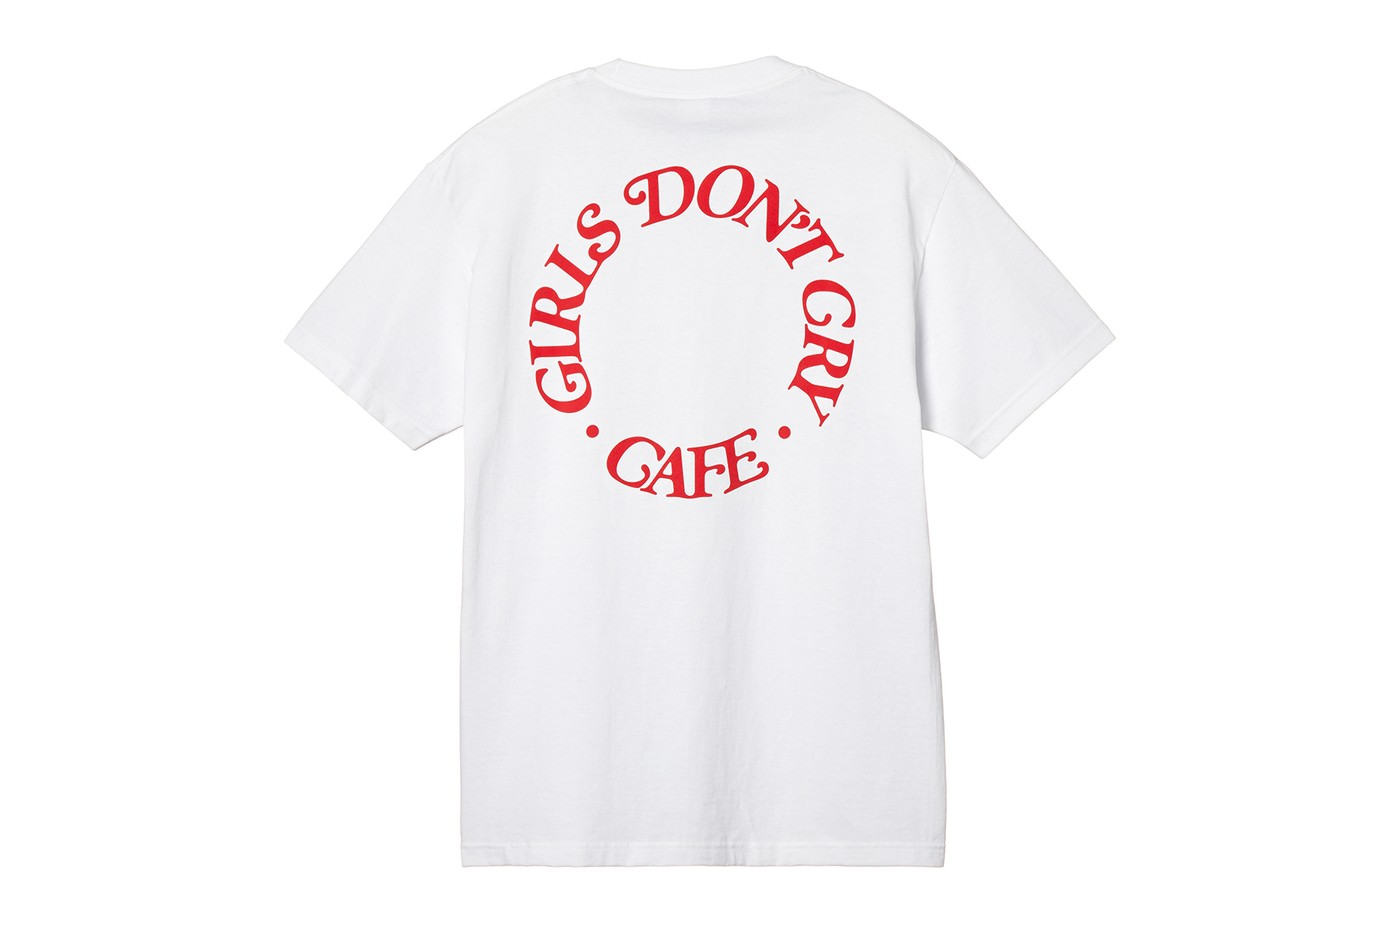 Girls Don't Cry × Amazon Fashion